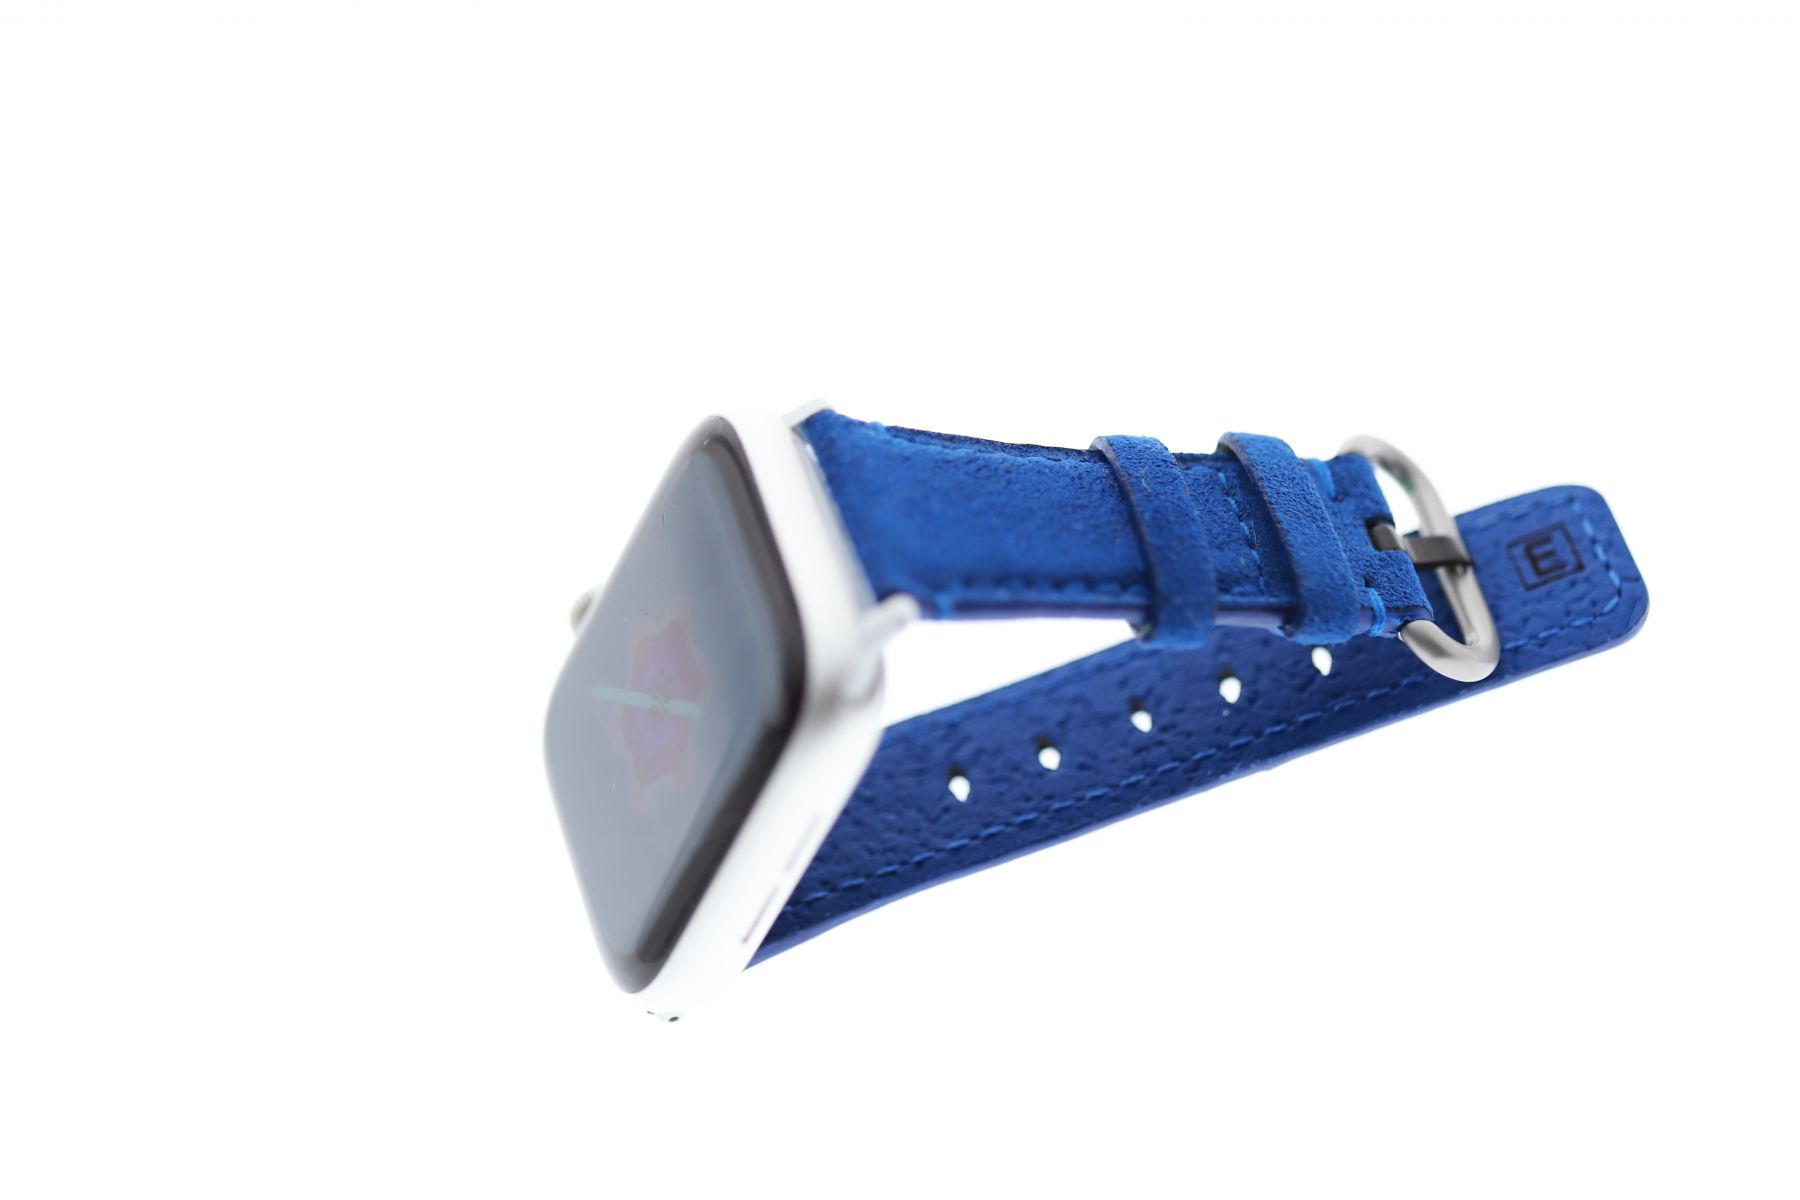 Band for Tiny Wrist (Apple Watch 38mm, 40mm) in BALTIC BLUE